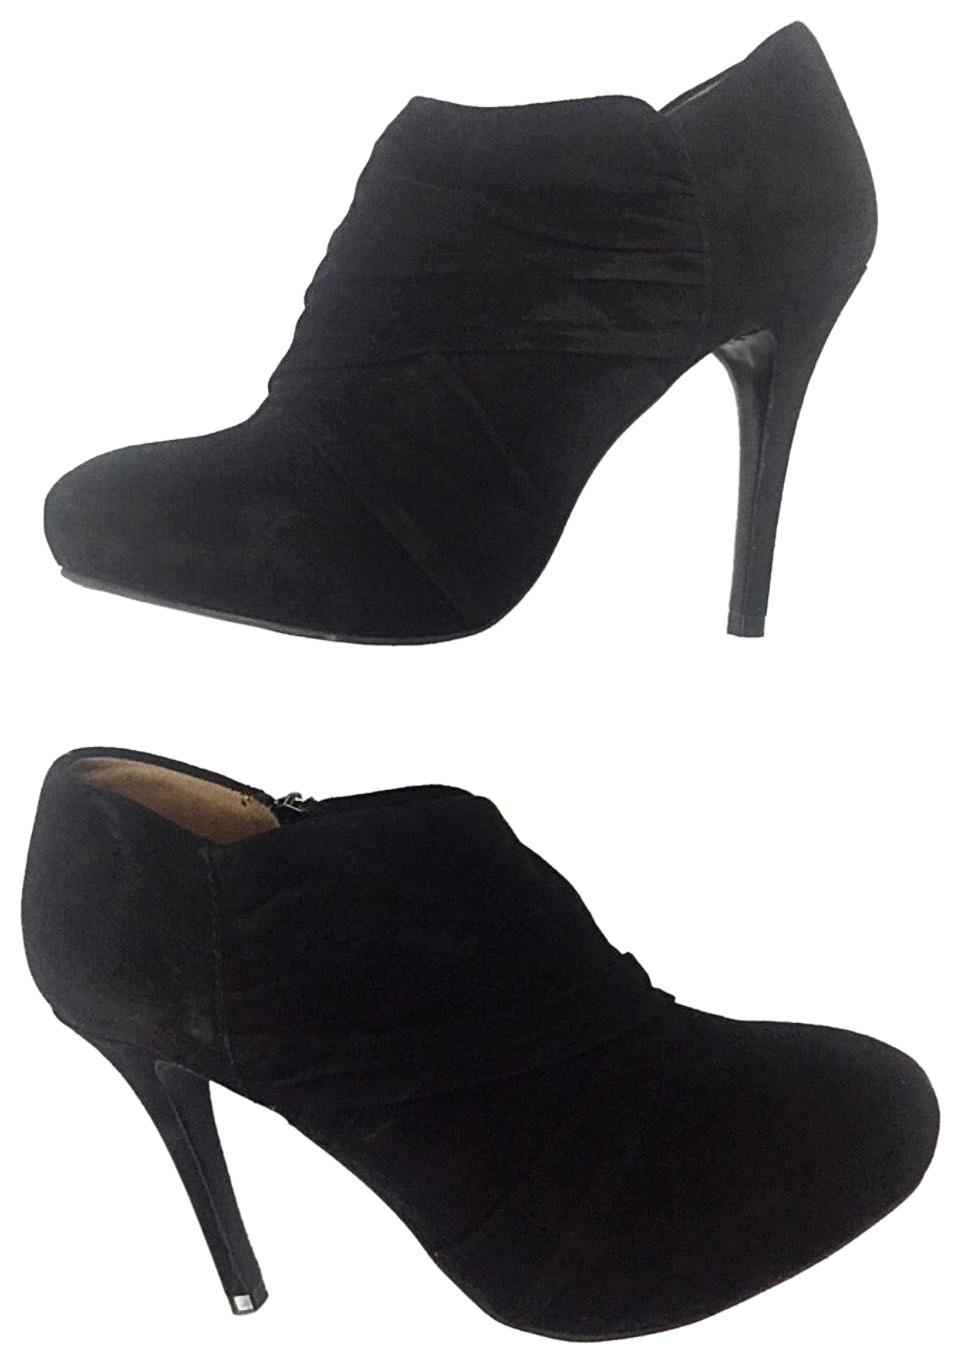 d6e56ef0572 Zara Black Black Black Ruched Suede Boots Booties Size EU 40 (Approx. US  10) Regular (M